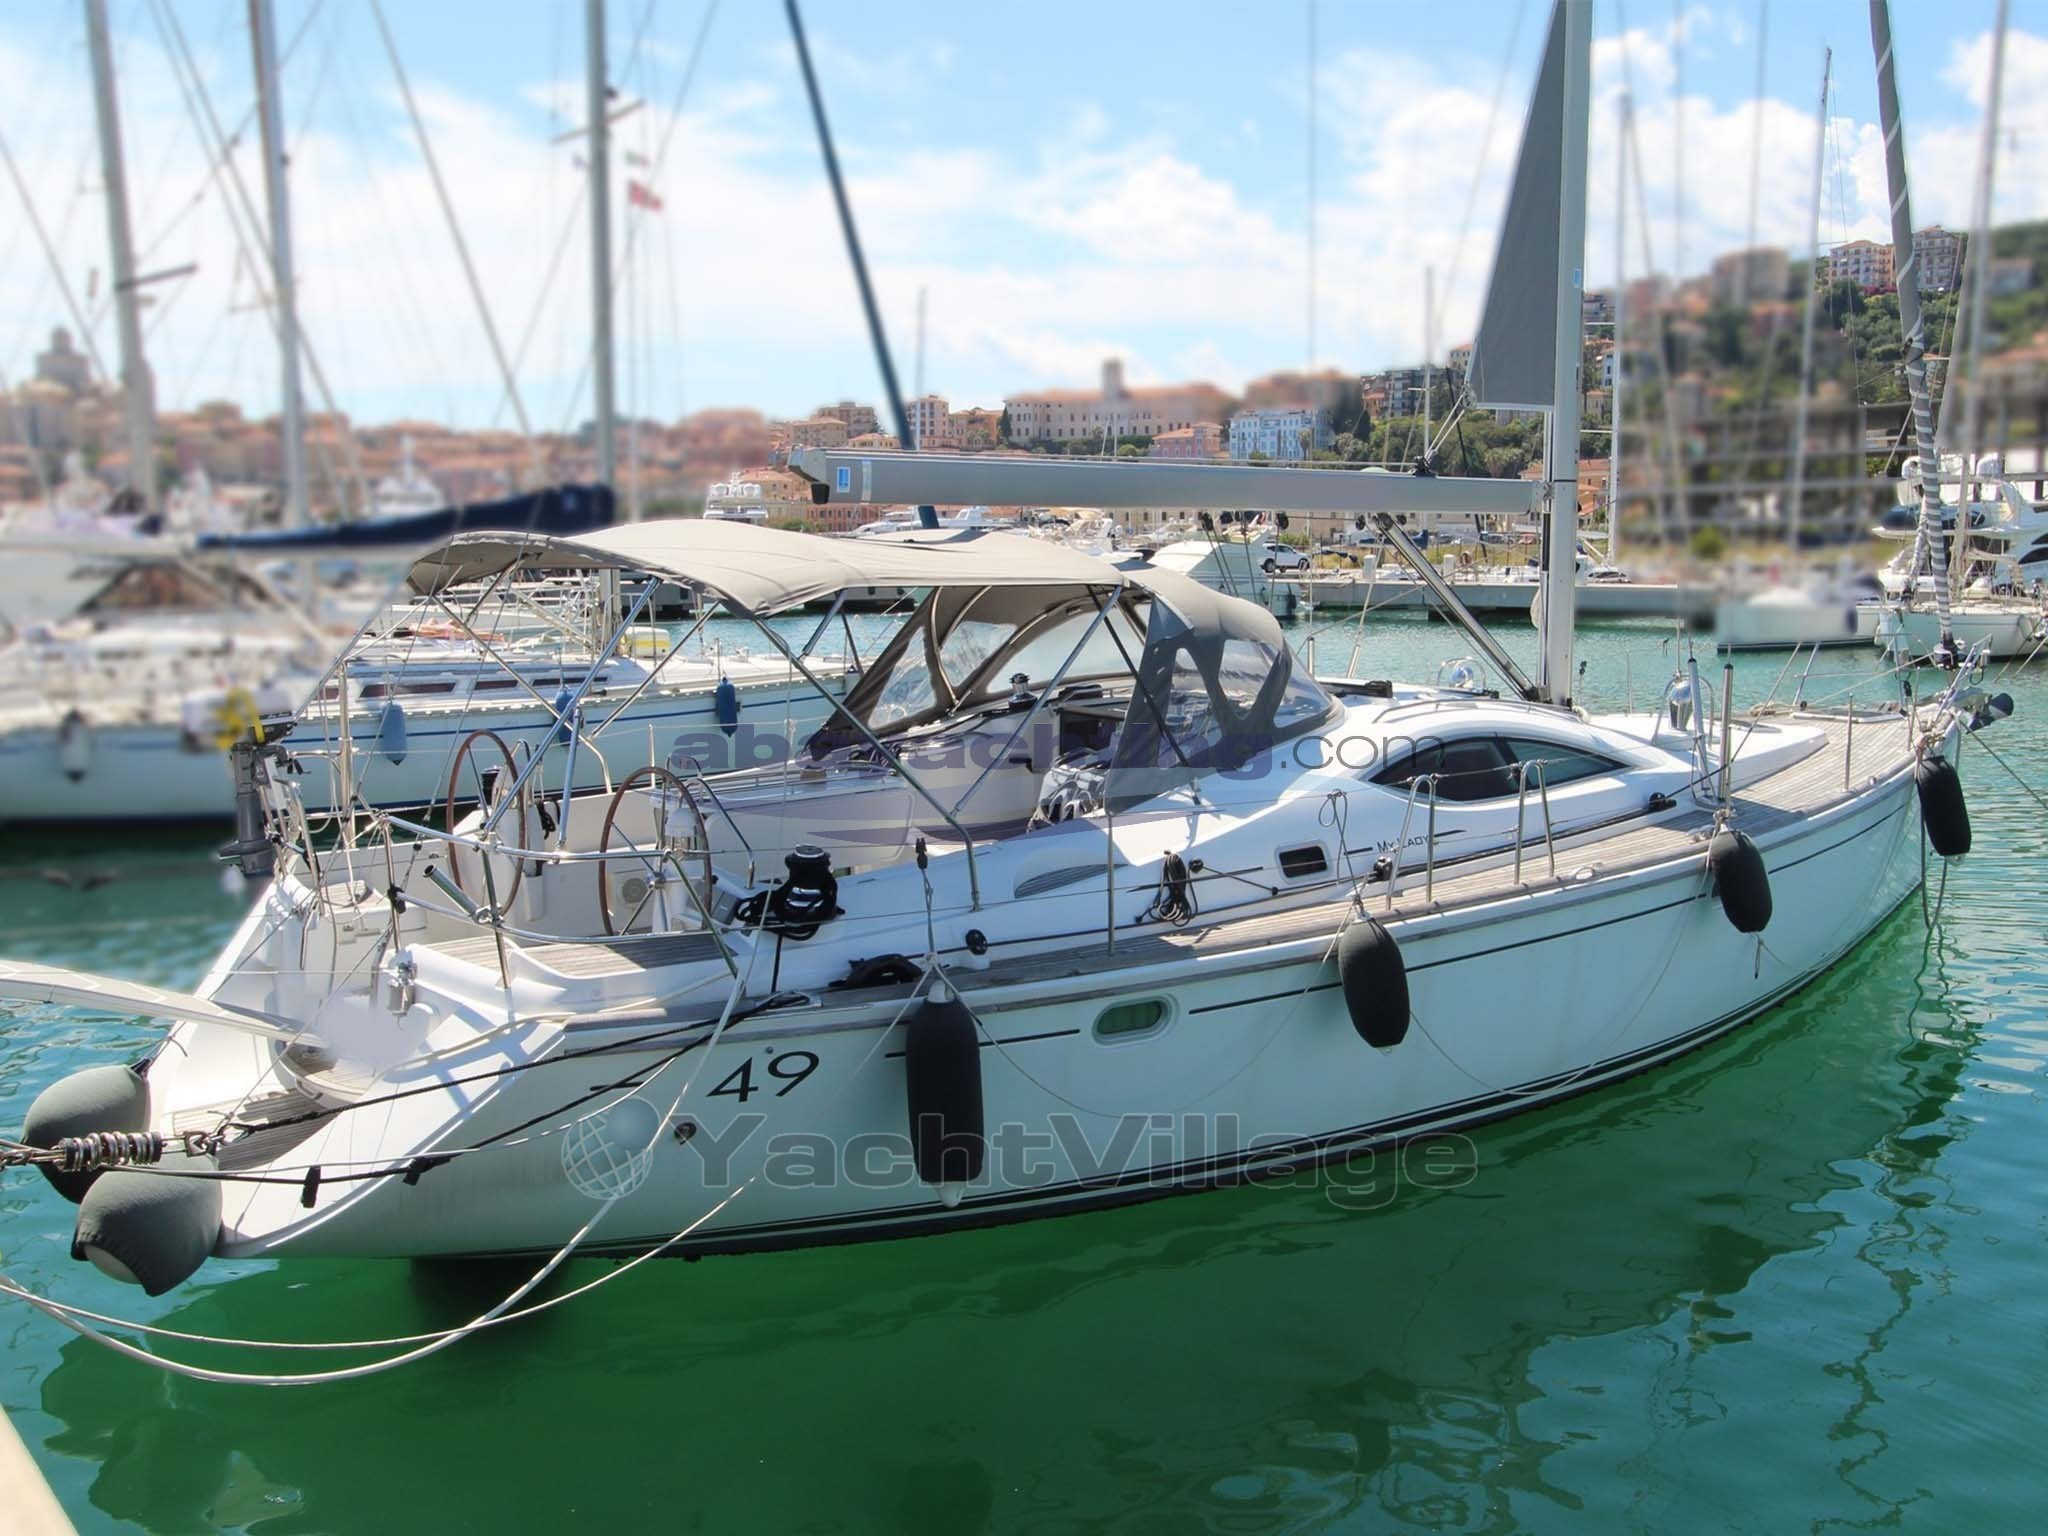 Abayachting Jeanneau Sun Odyssey 49ds usato-second hand 1